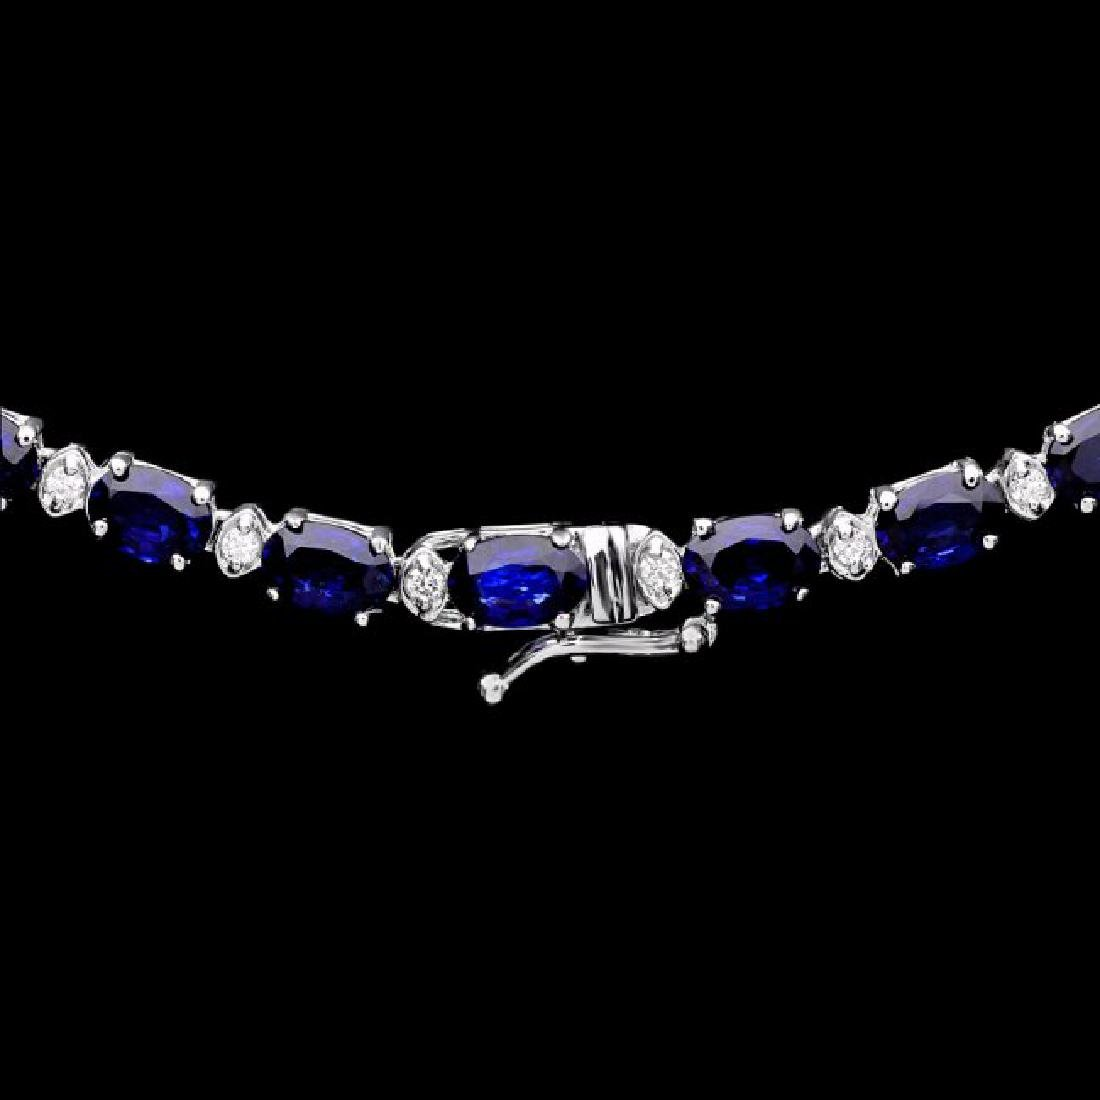 14k Gold 30ct Sapphire 1.10ct Diamond Necklace - 3